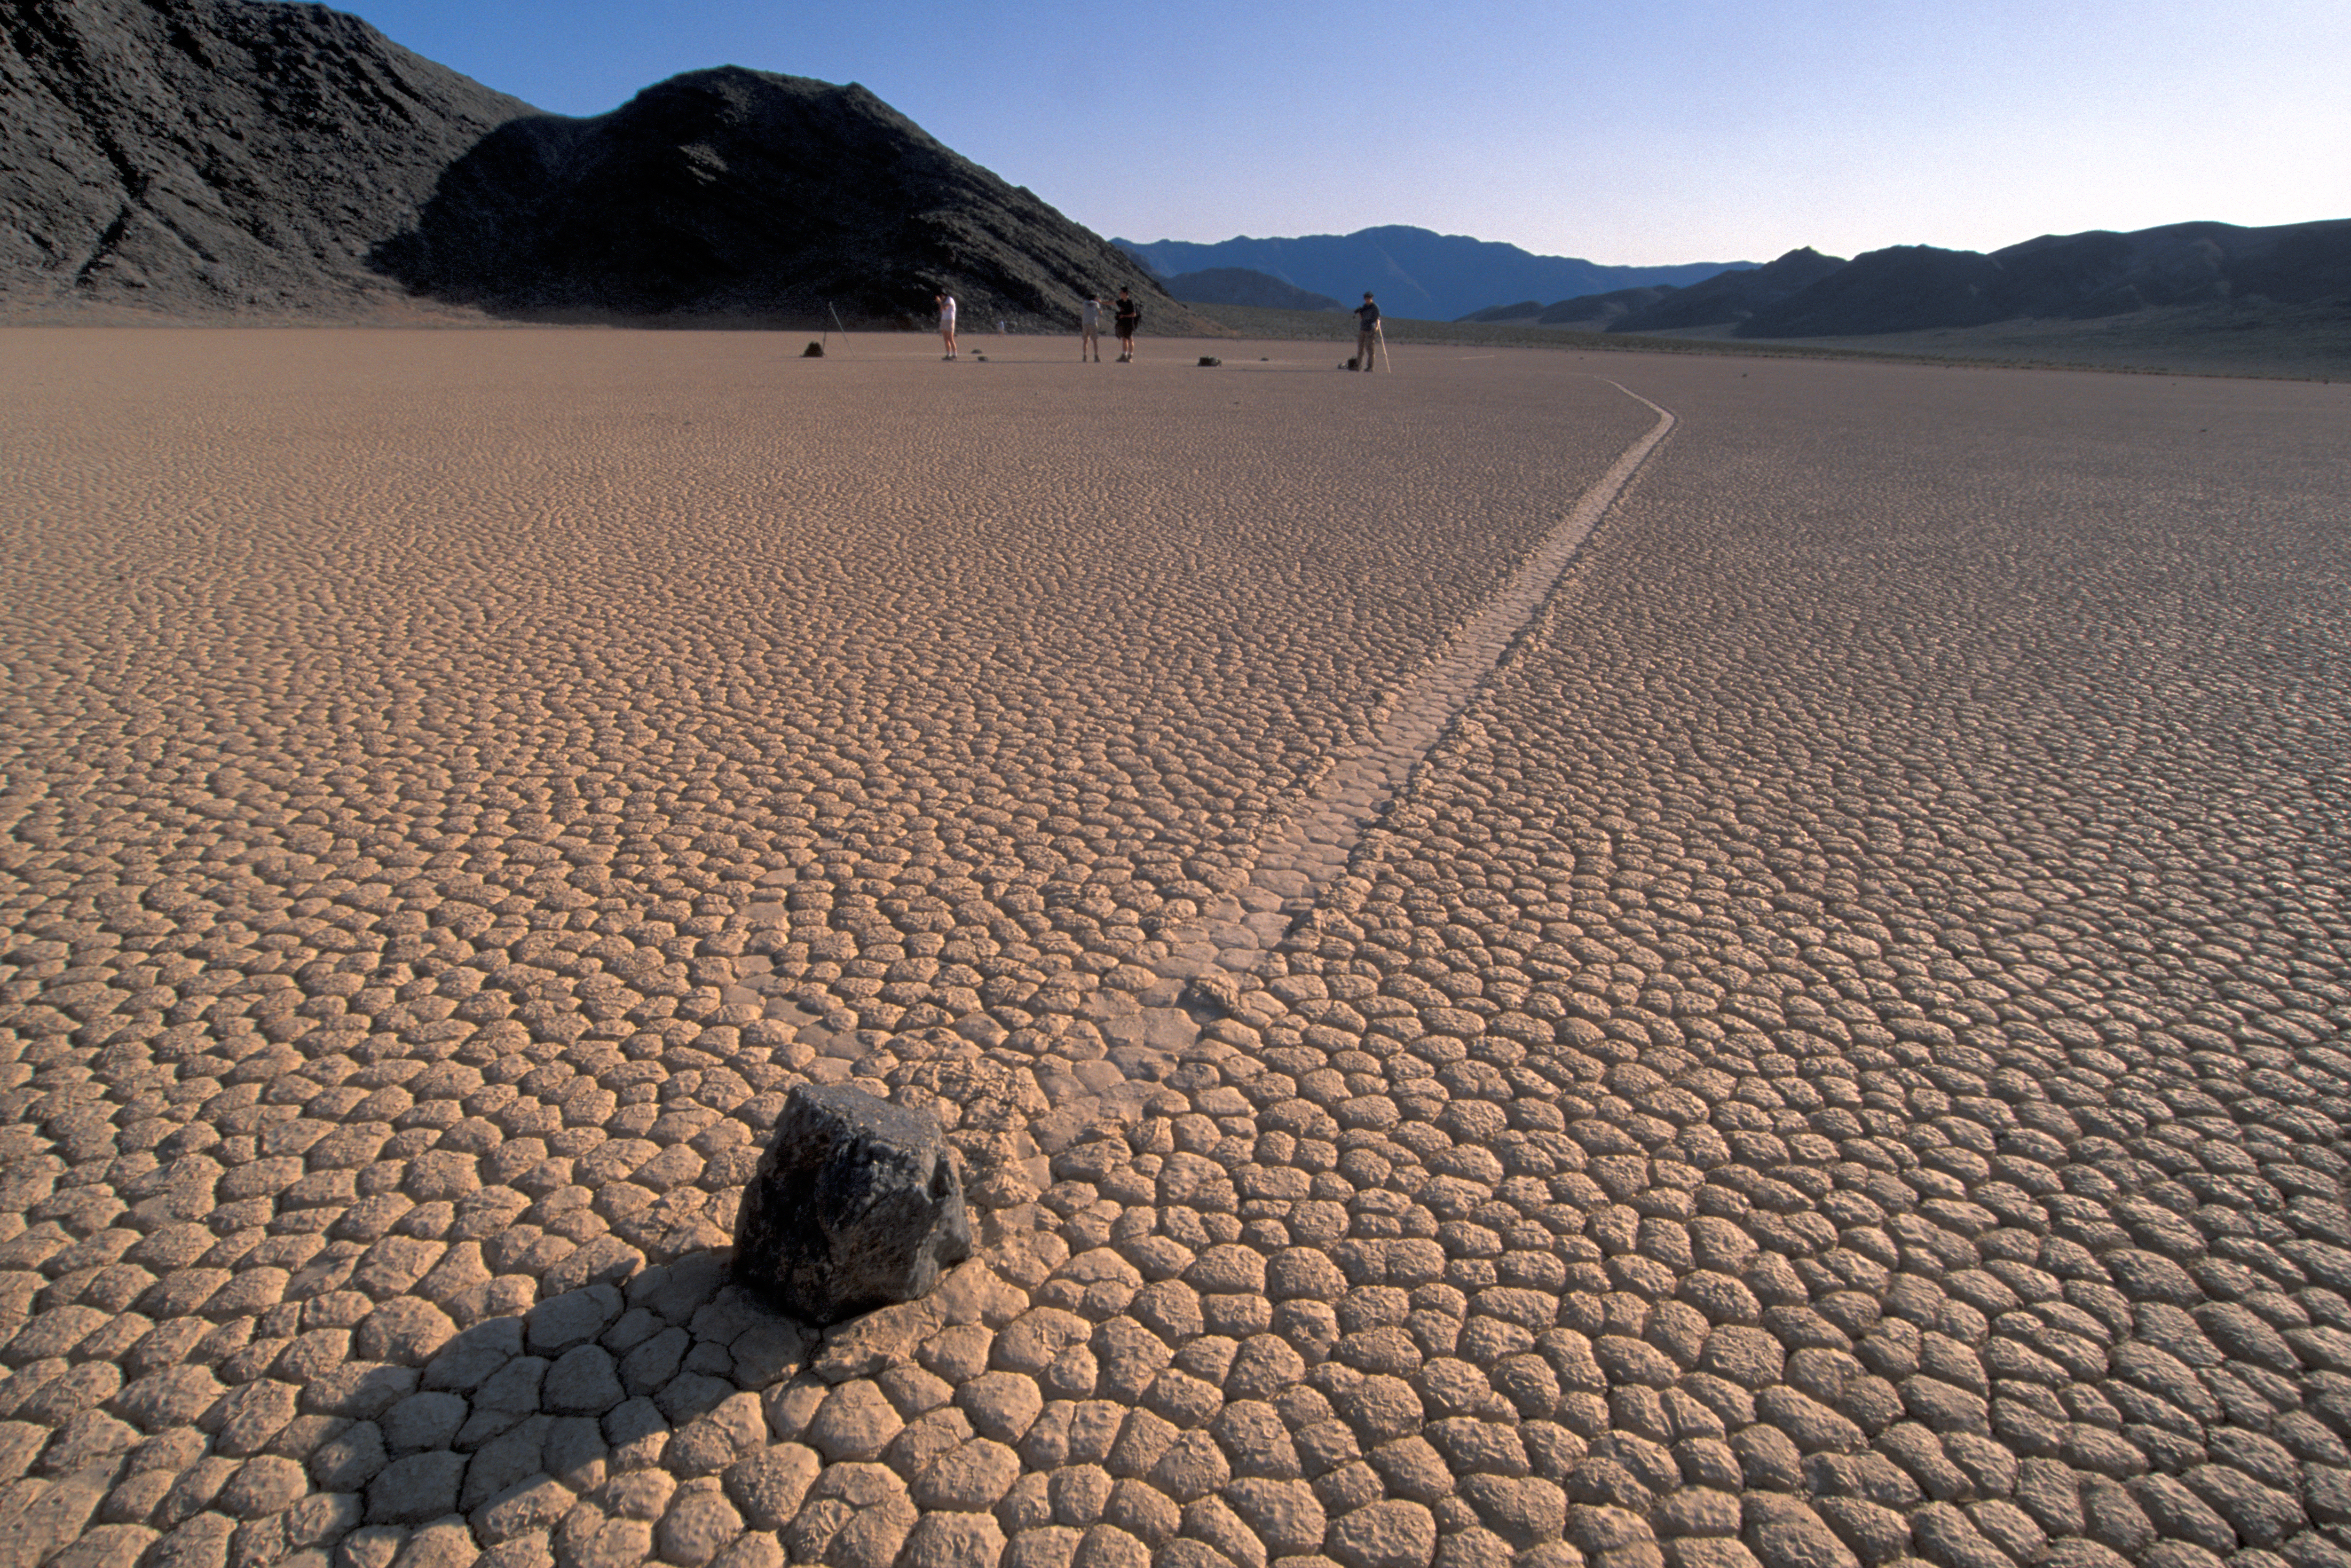 A sailing stone in Racetrack playa, Death Valley, in California